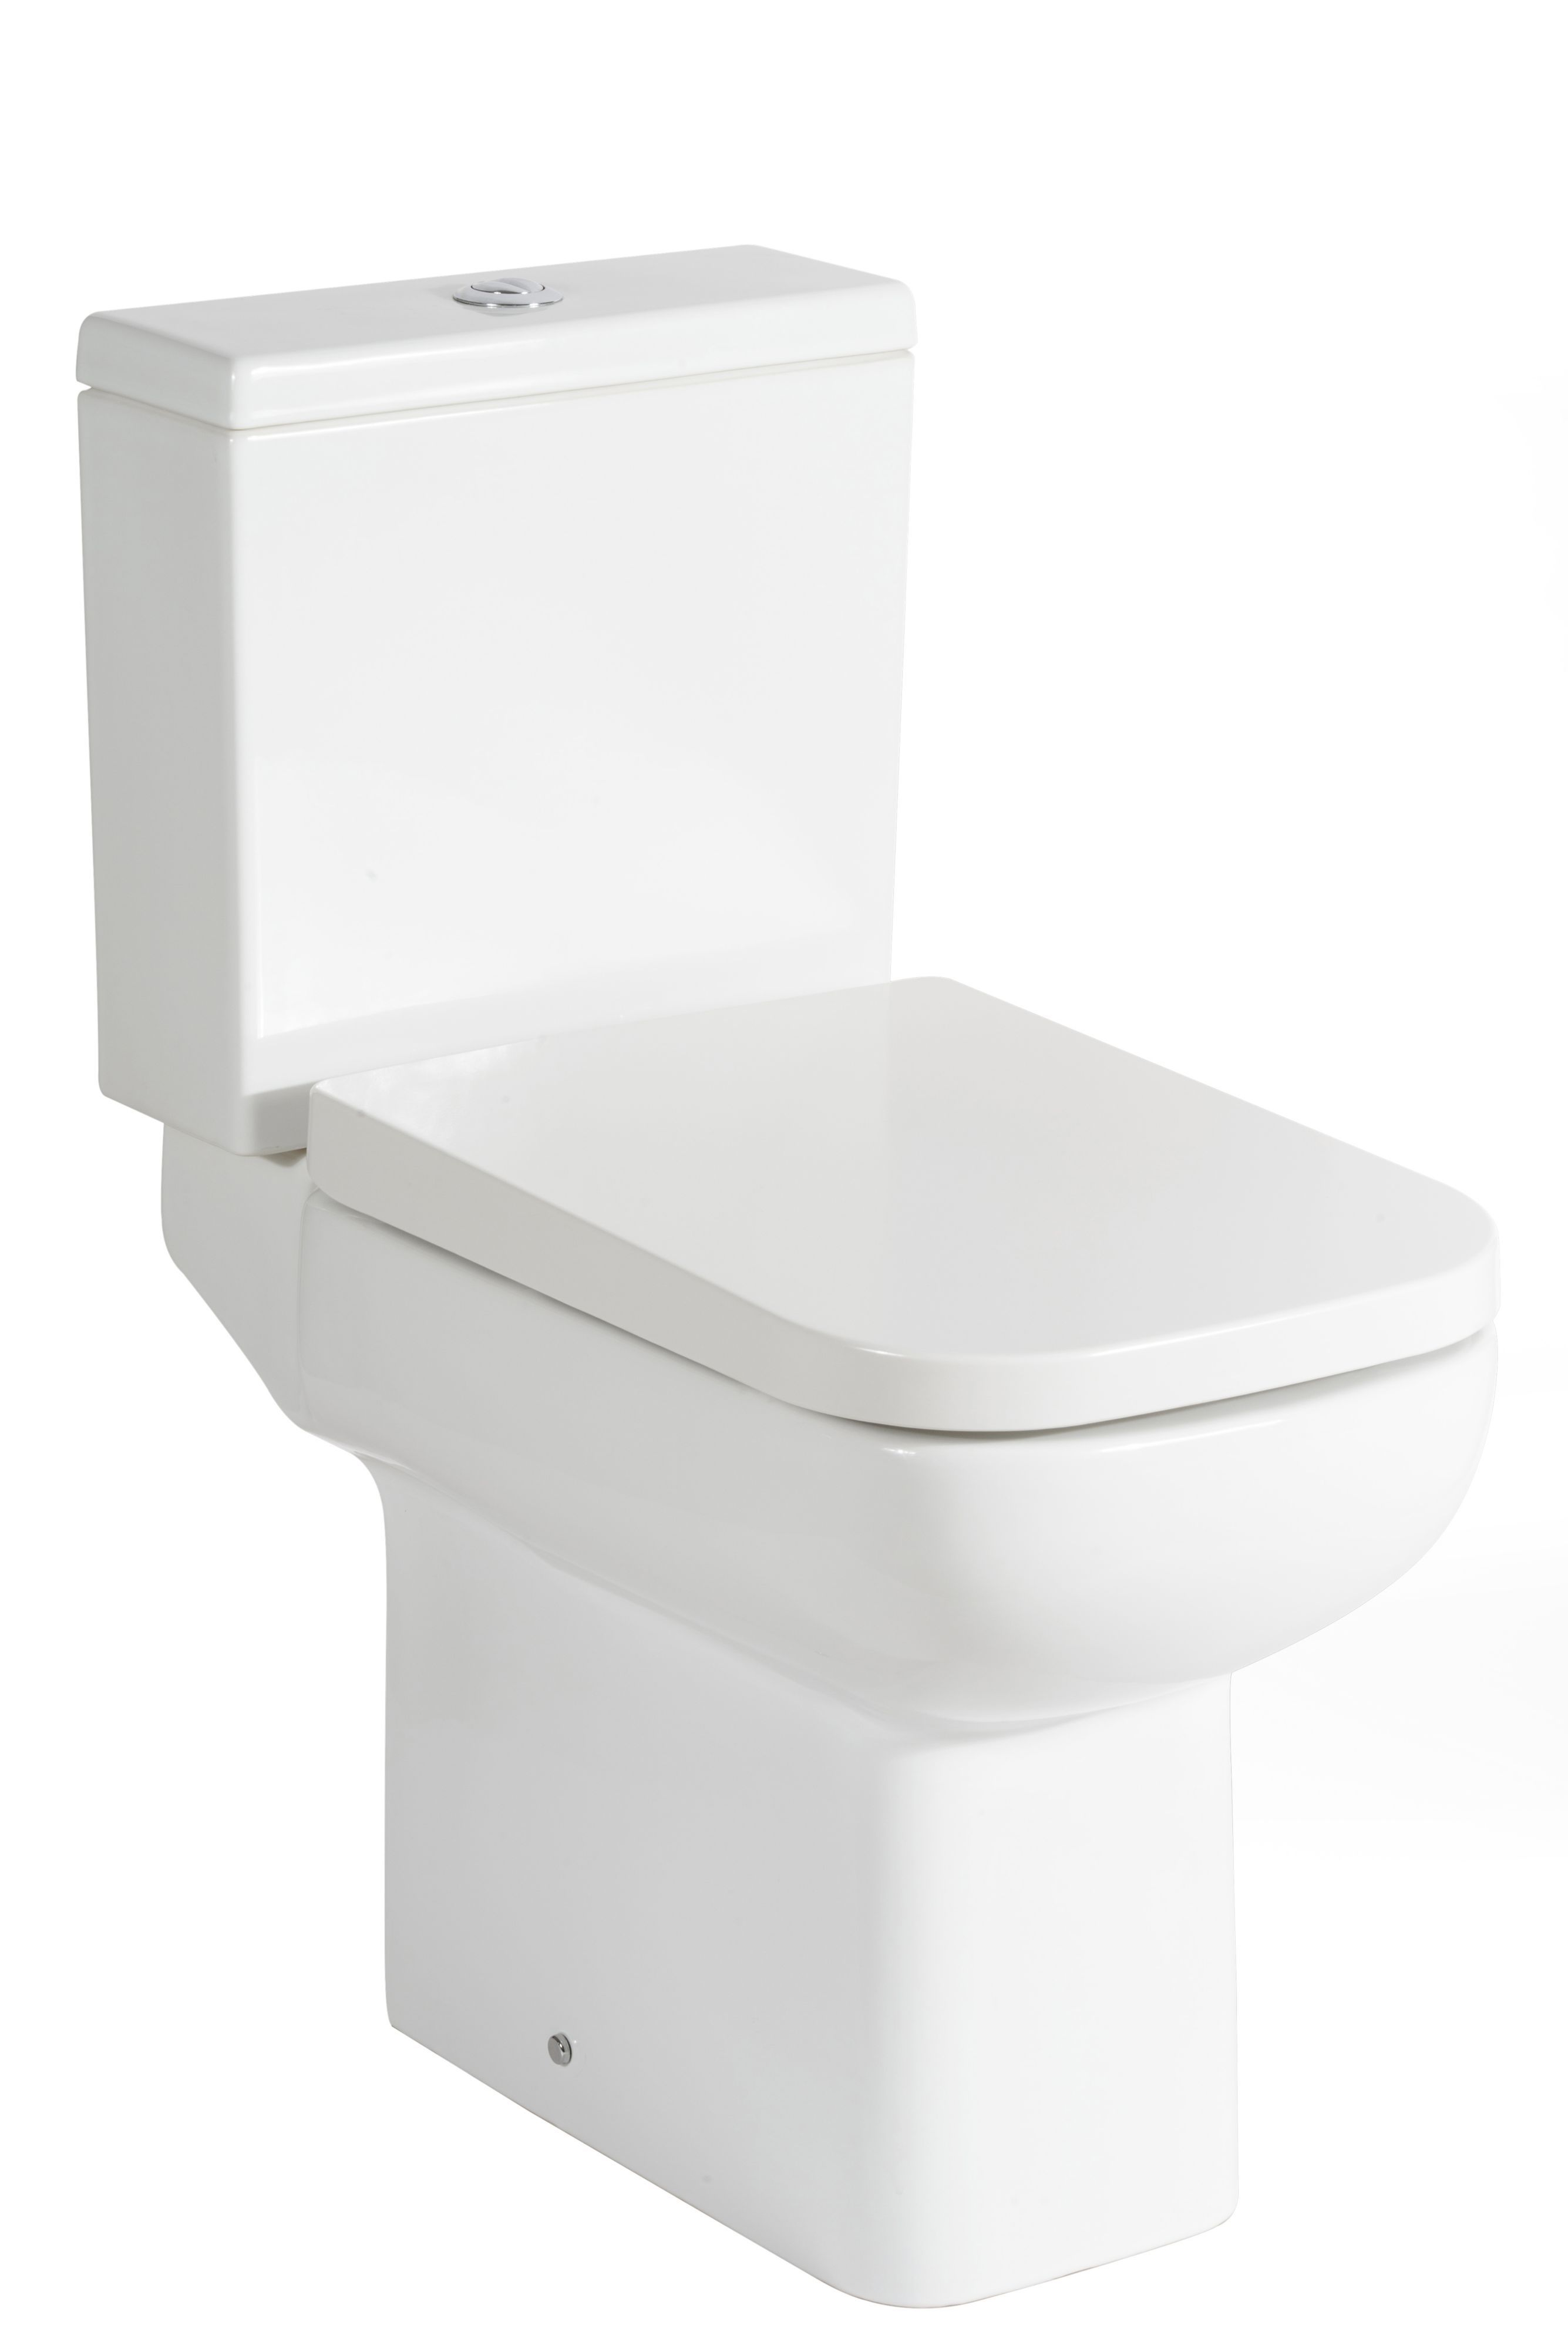 Cooke Amp Lewis Fabienne Close Coupled Toilet With Soft